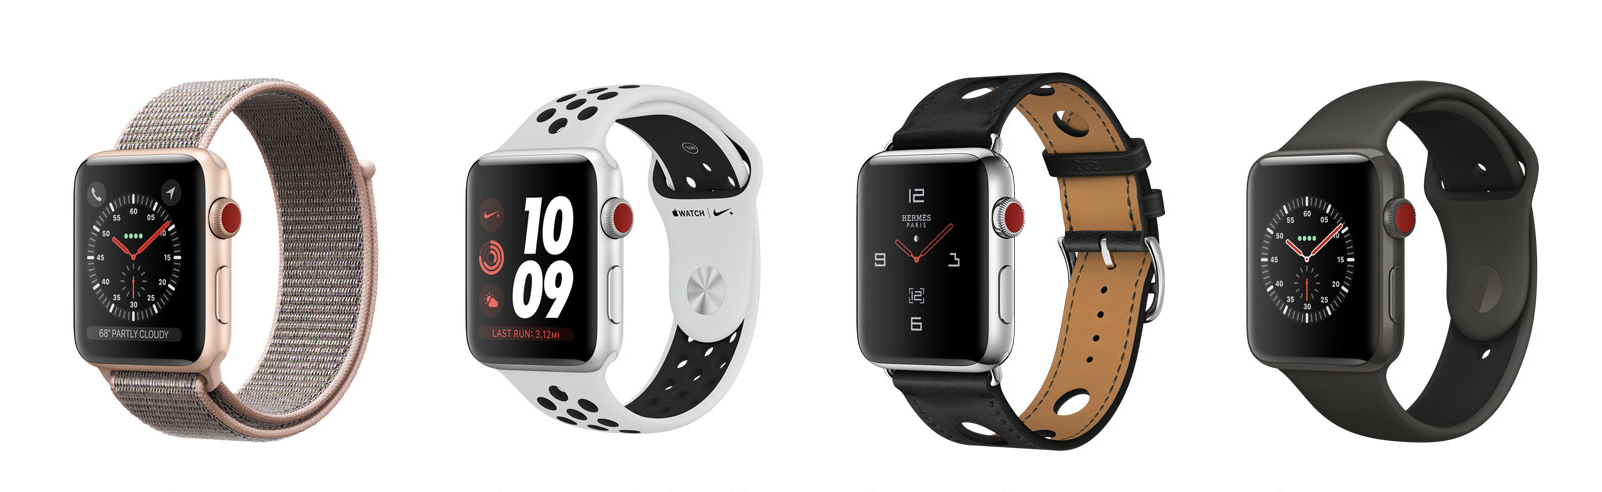 Apple Watch Series 3 to launch at iStore